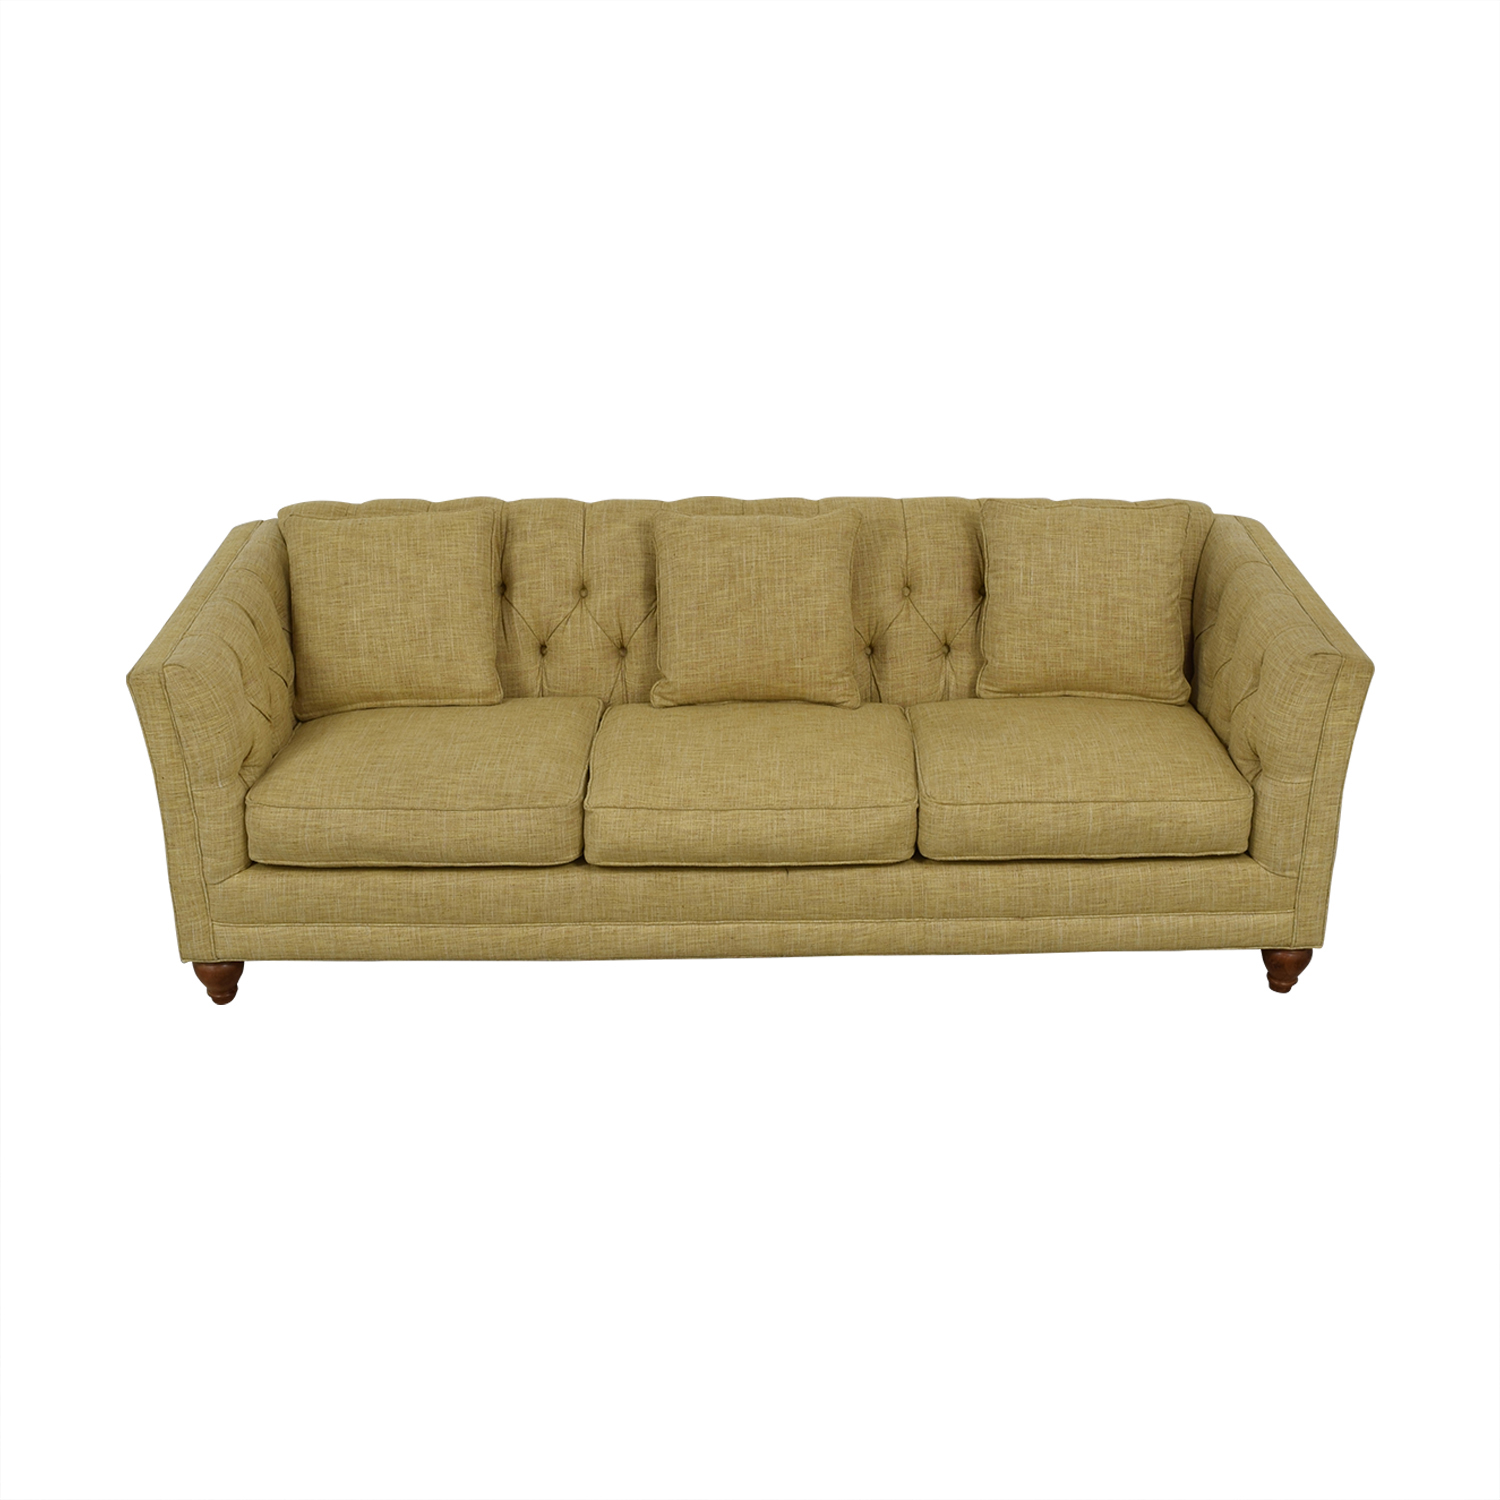 Country Willow Country Willow Tan Three-Cushion Sofa dimensions